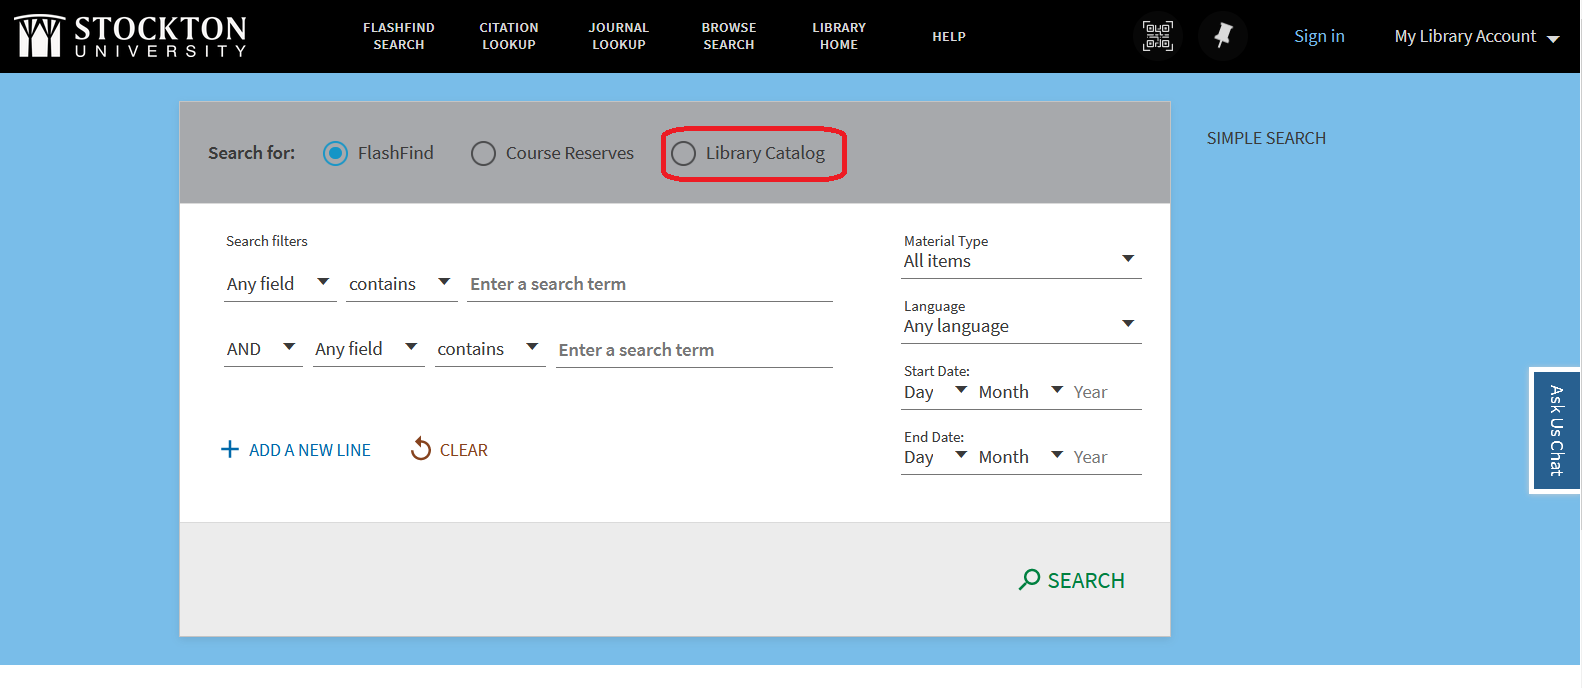 Screen capture highlighting the Library Catalog radio button